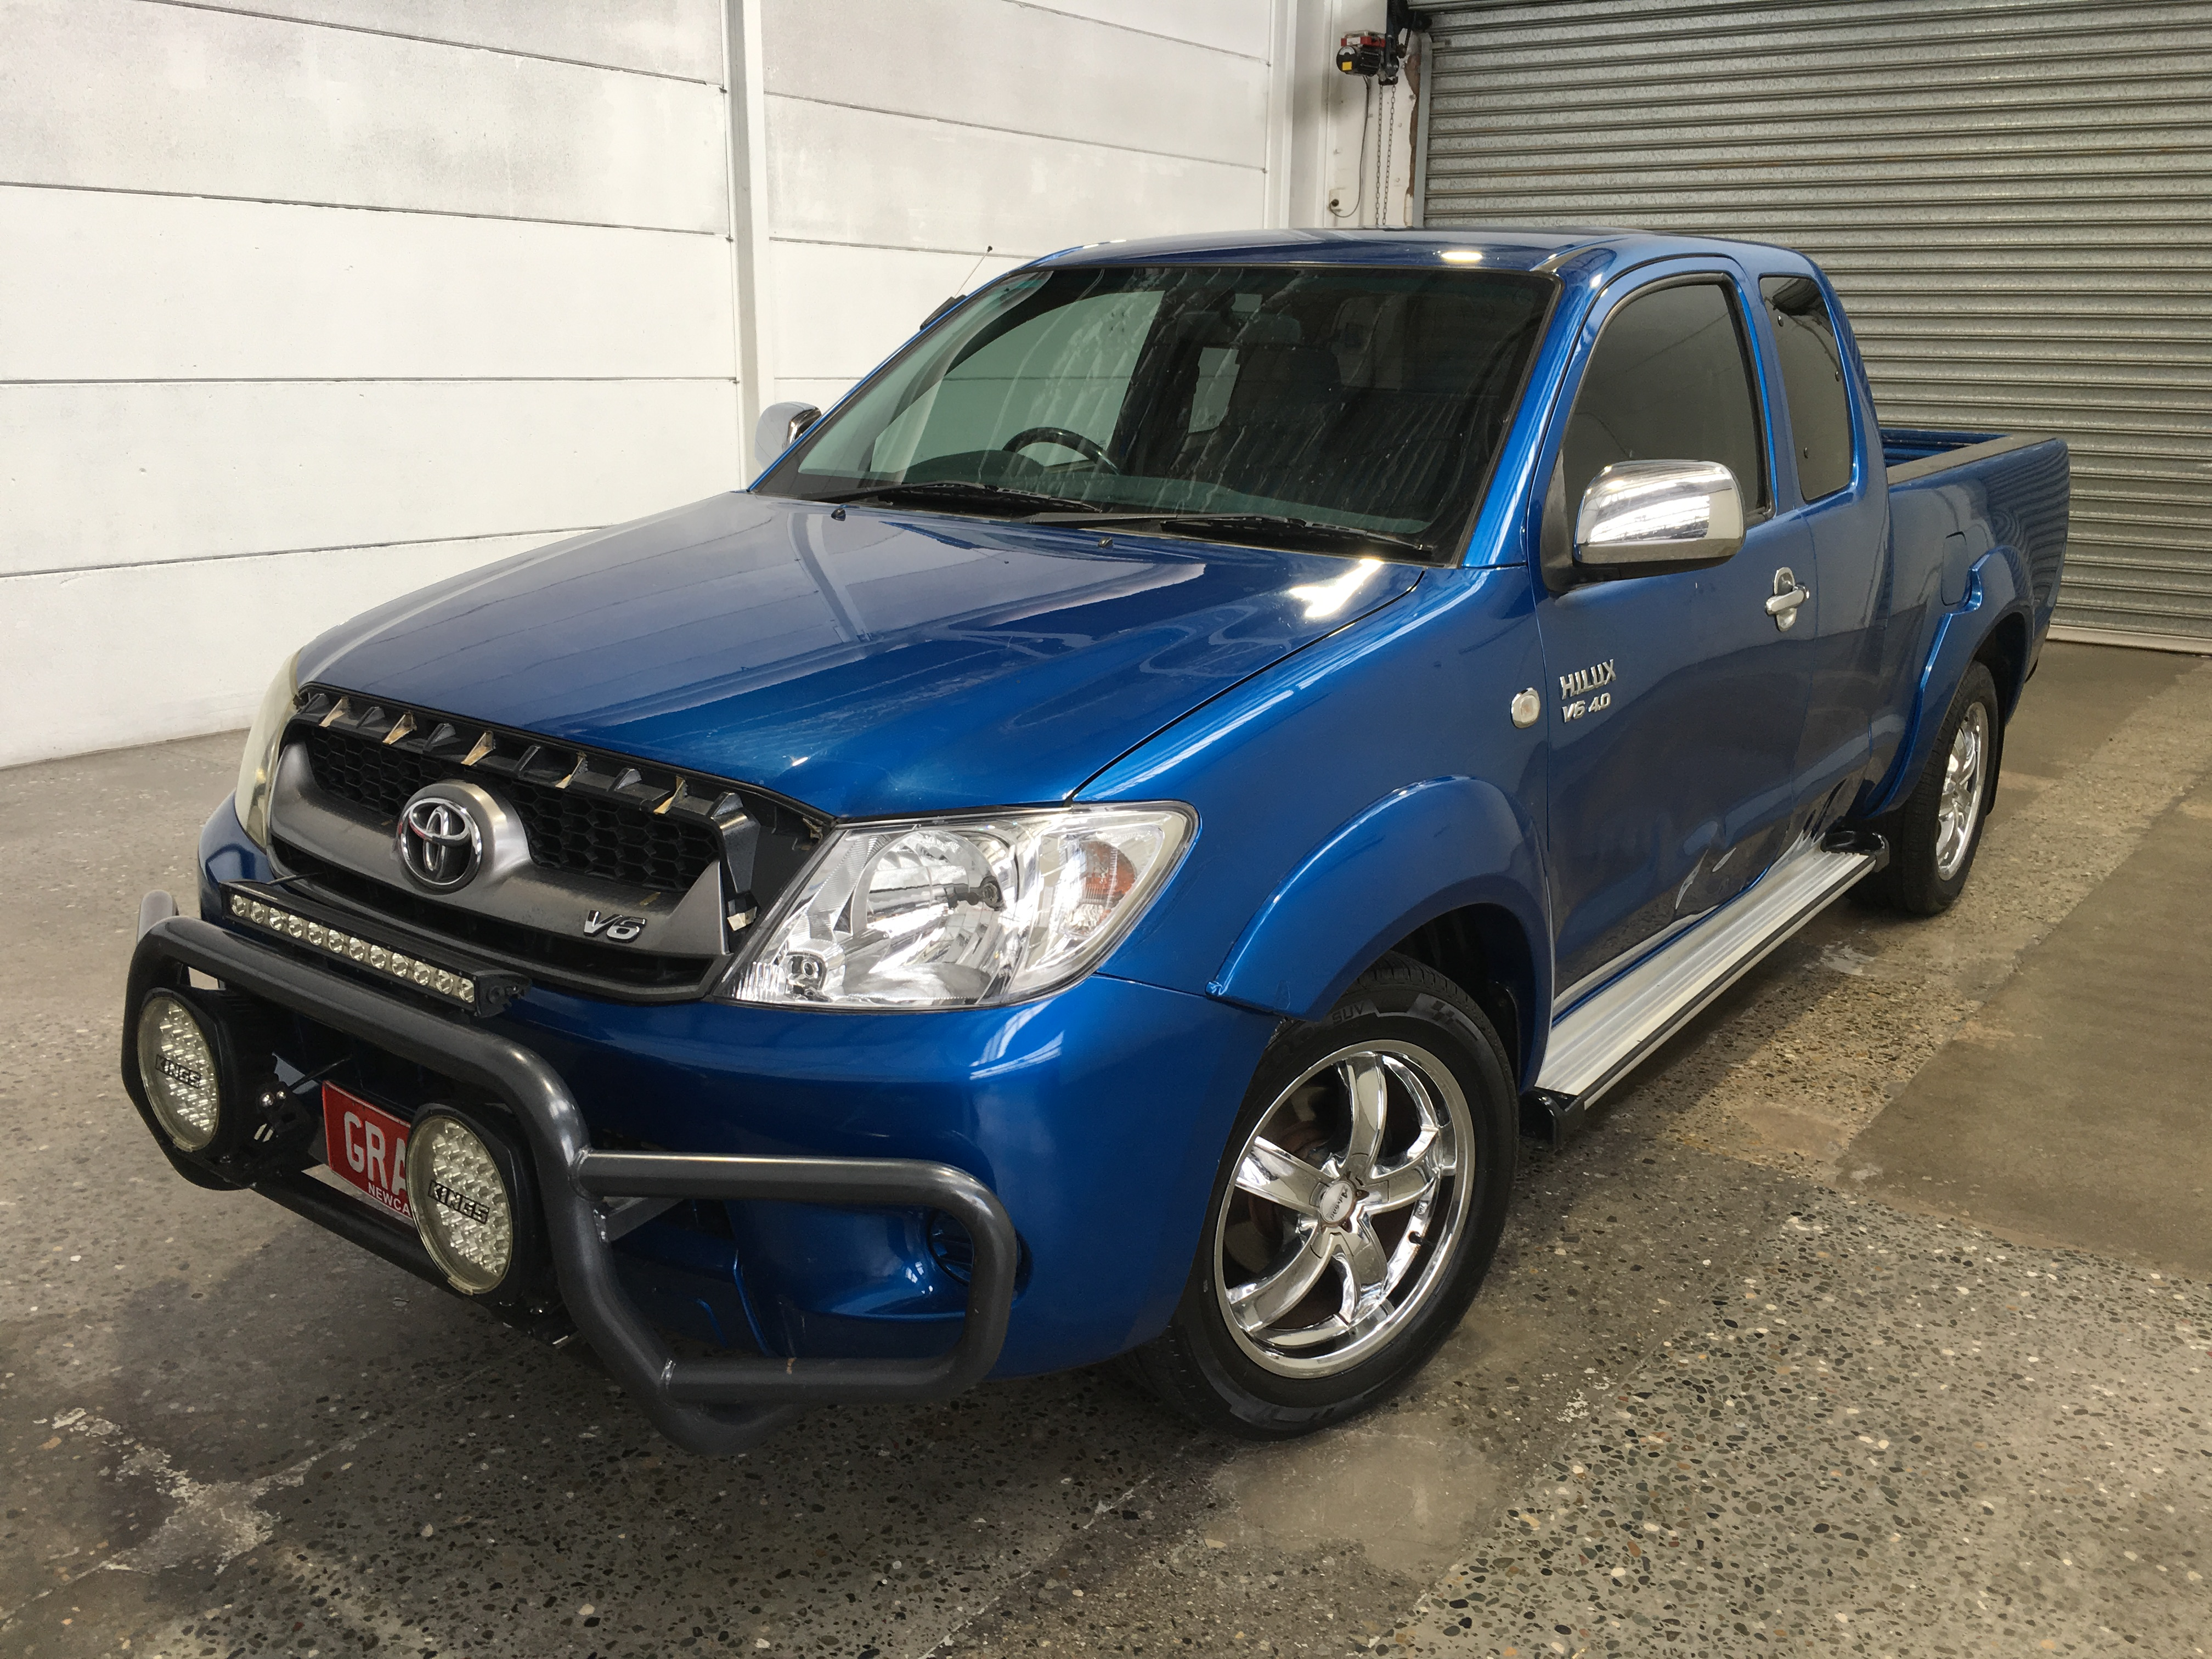 2008 Toyota Hilux SR5 GGN15R Automatic Ute